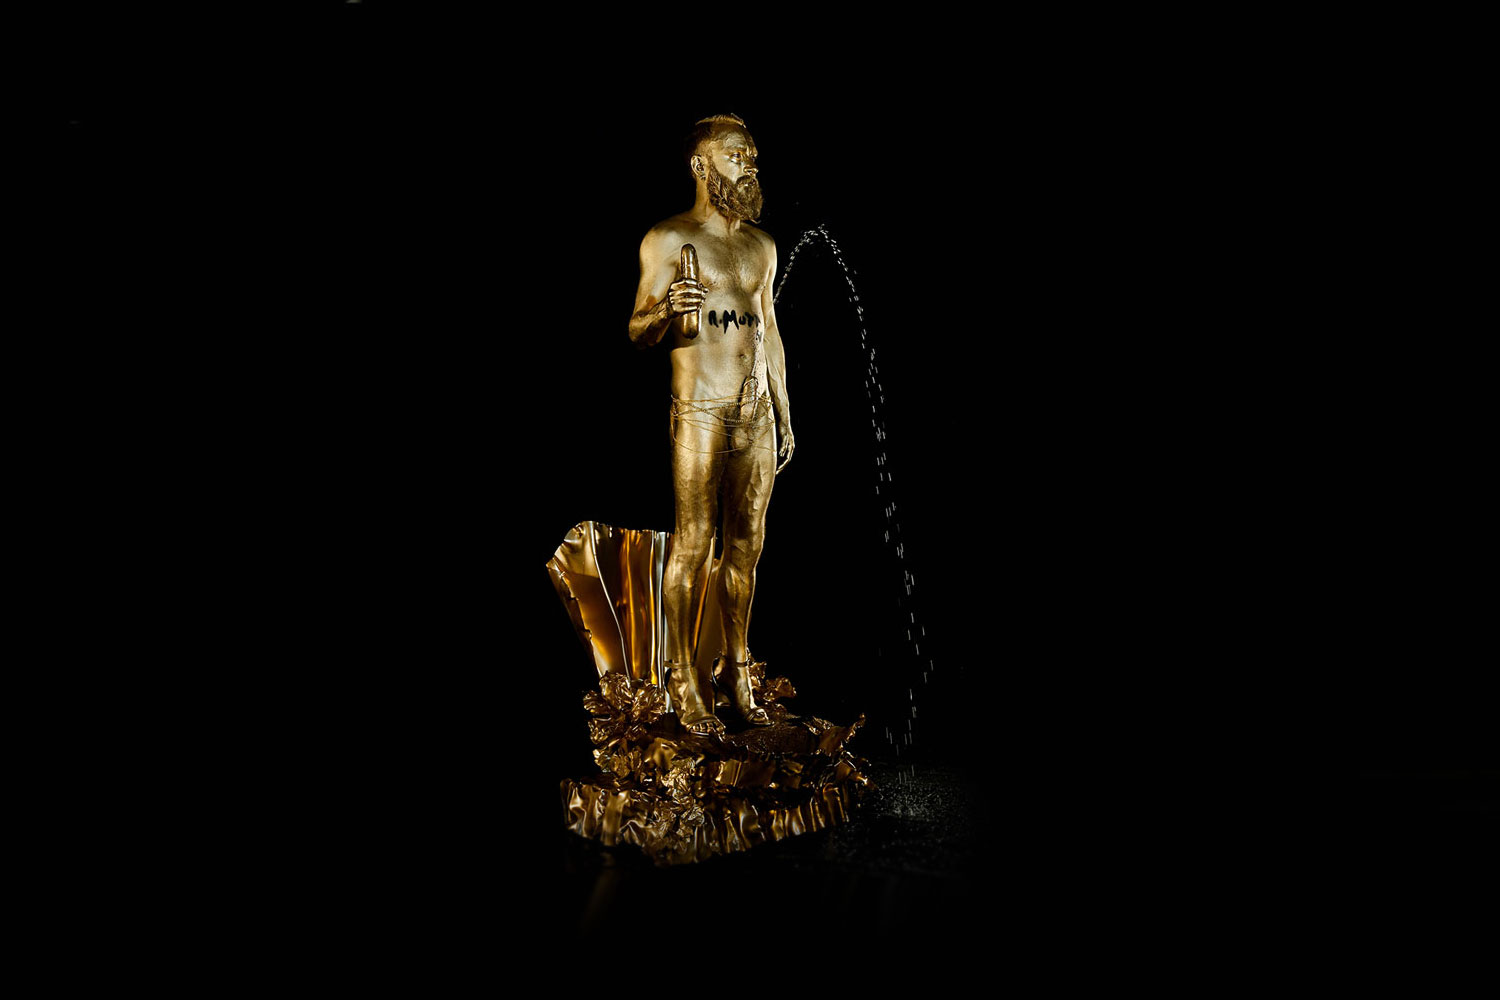 GOLDEN_FOUNTAIN-MAIN_cover-miguel_andres